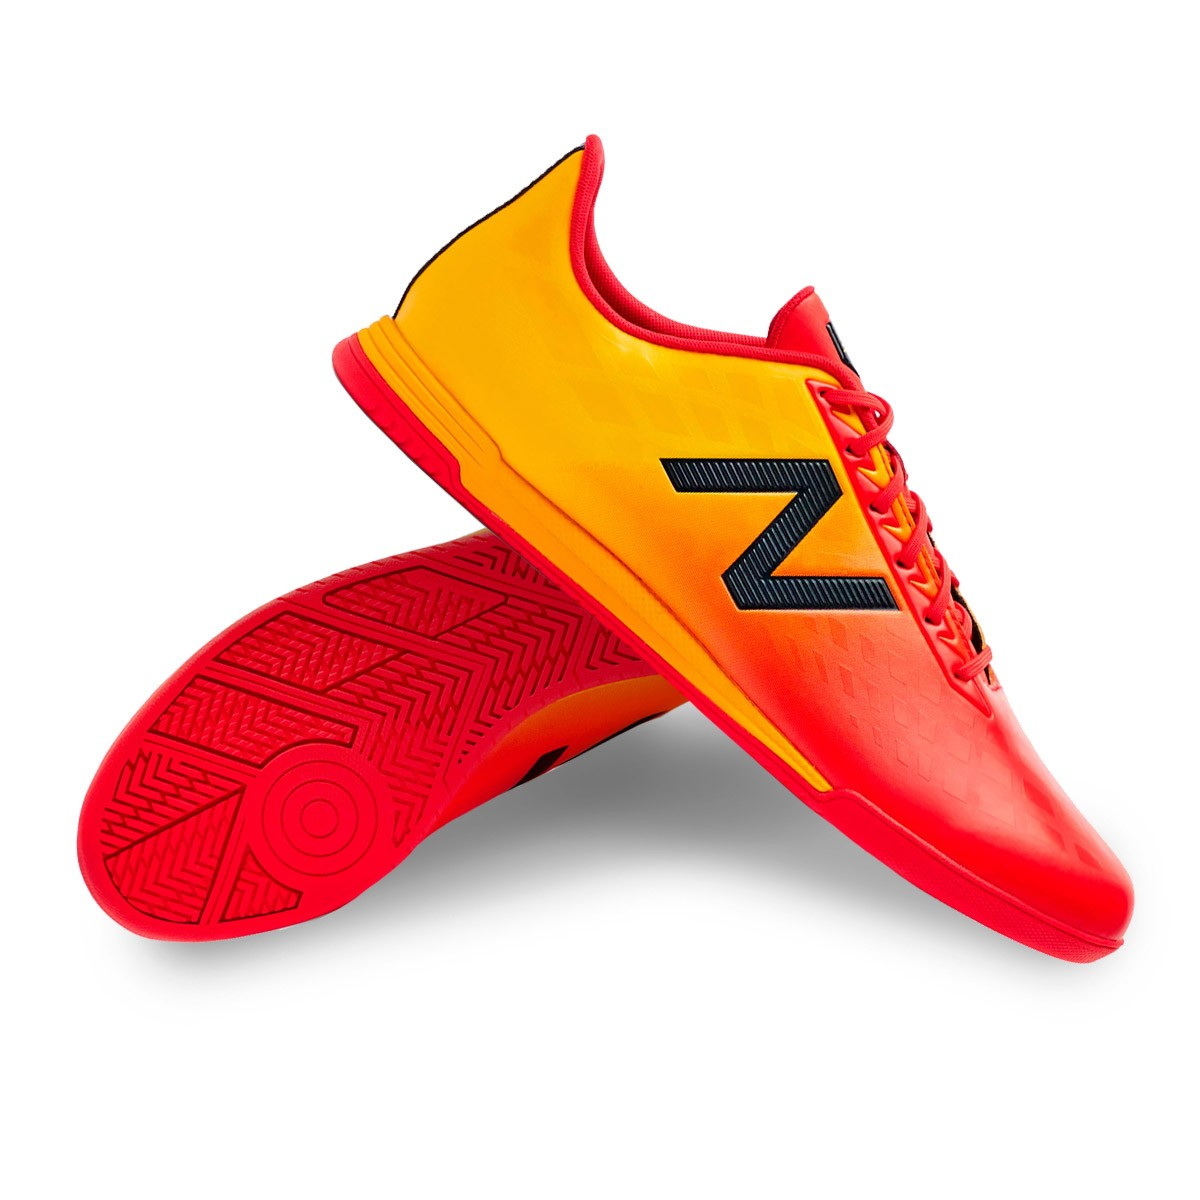 892e8db55a0 Futsal Boot New Balance Furon 4.0 Dispatch Indoor Flame - Football ...